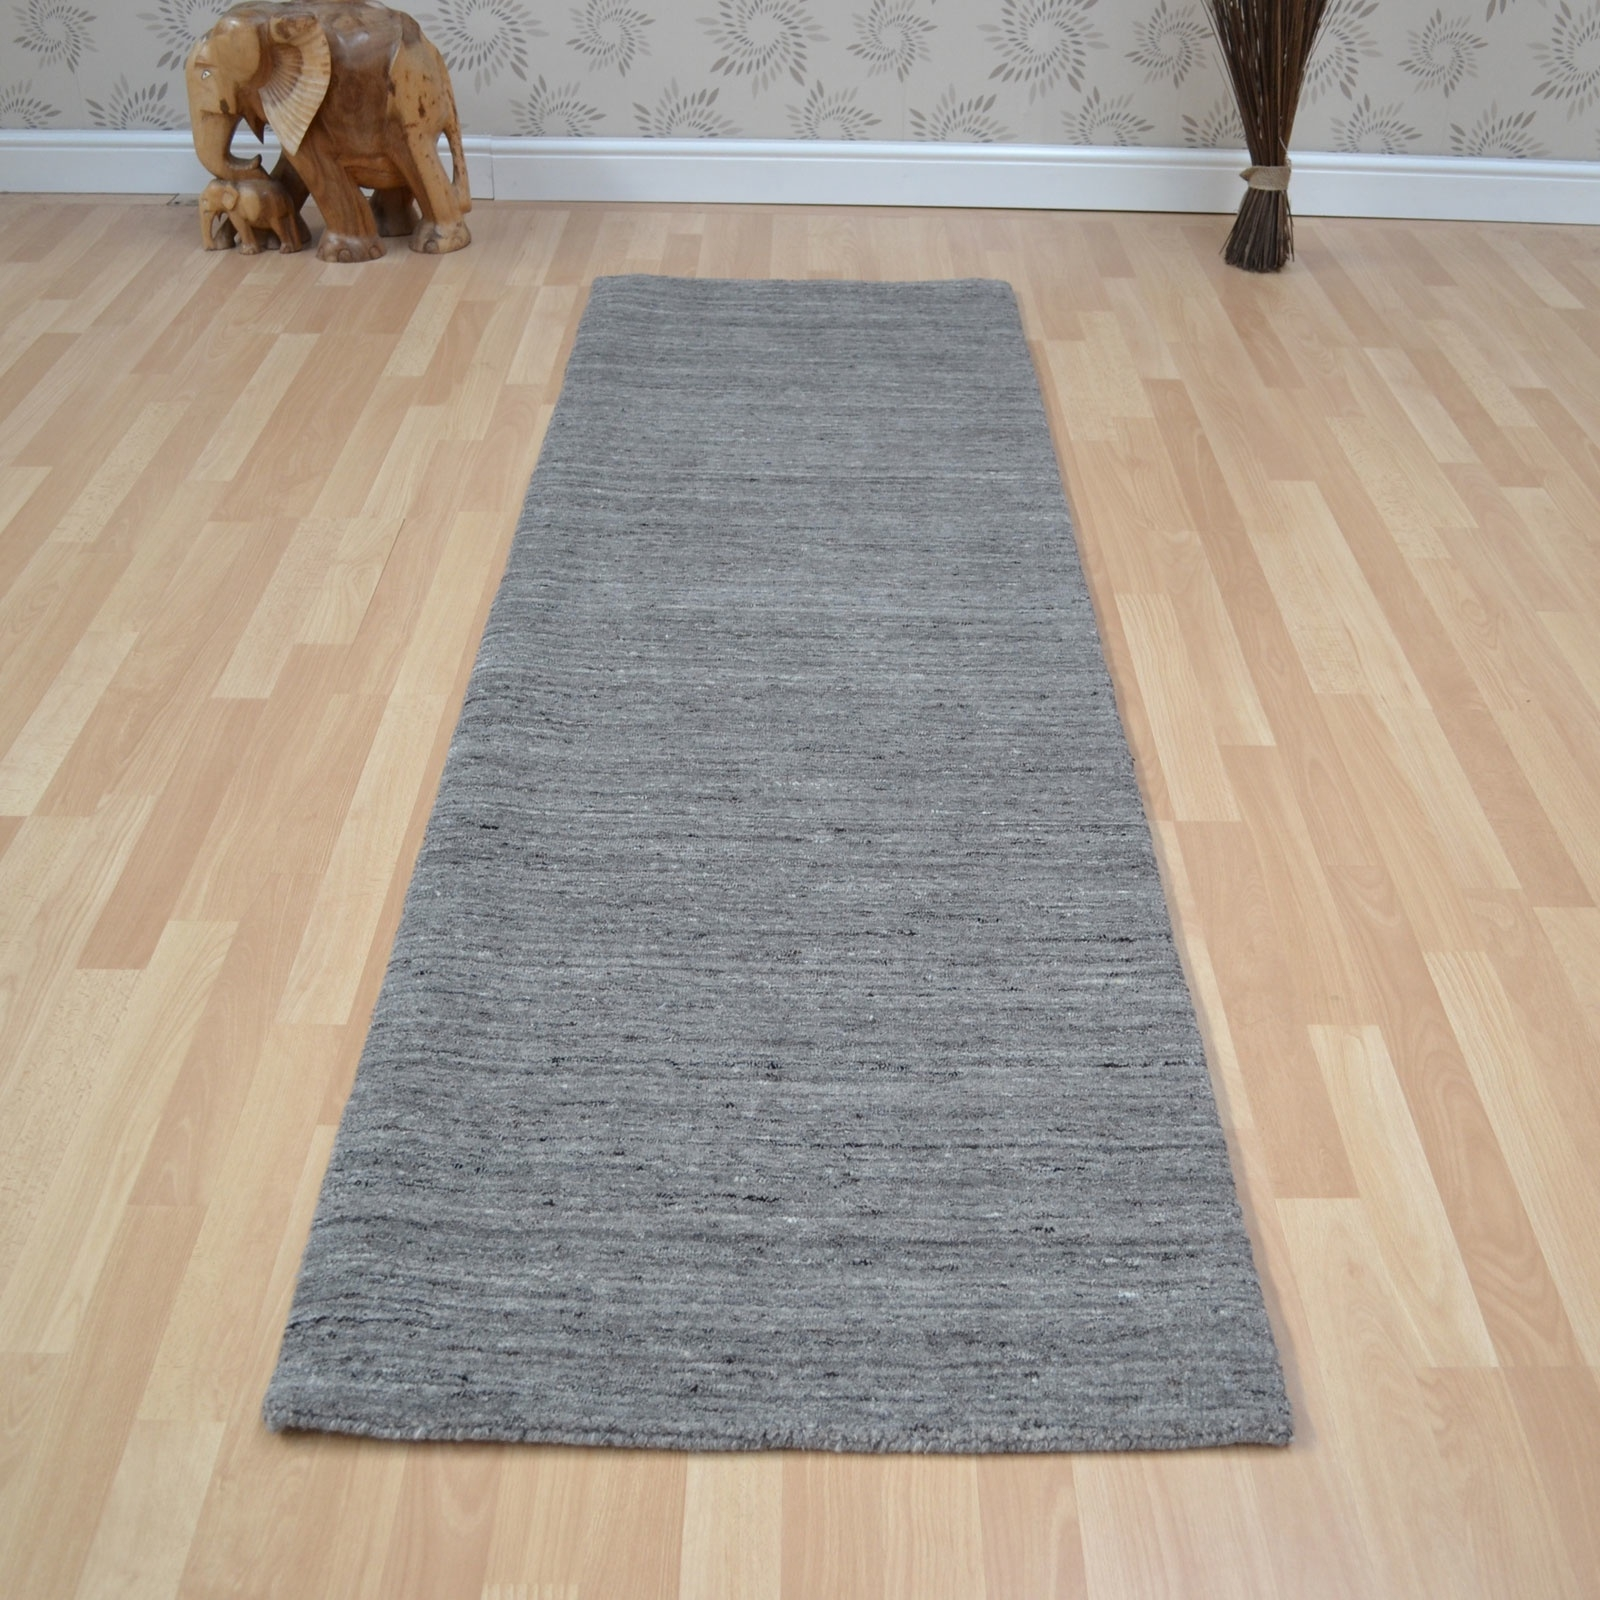 Washable Runner Rugs Cute For Modern Rugs Custom Rugs Rug Ideas Pertaining To Custom Rugs (View 15 of 15)